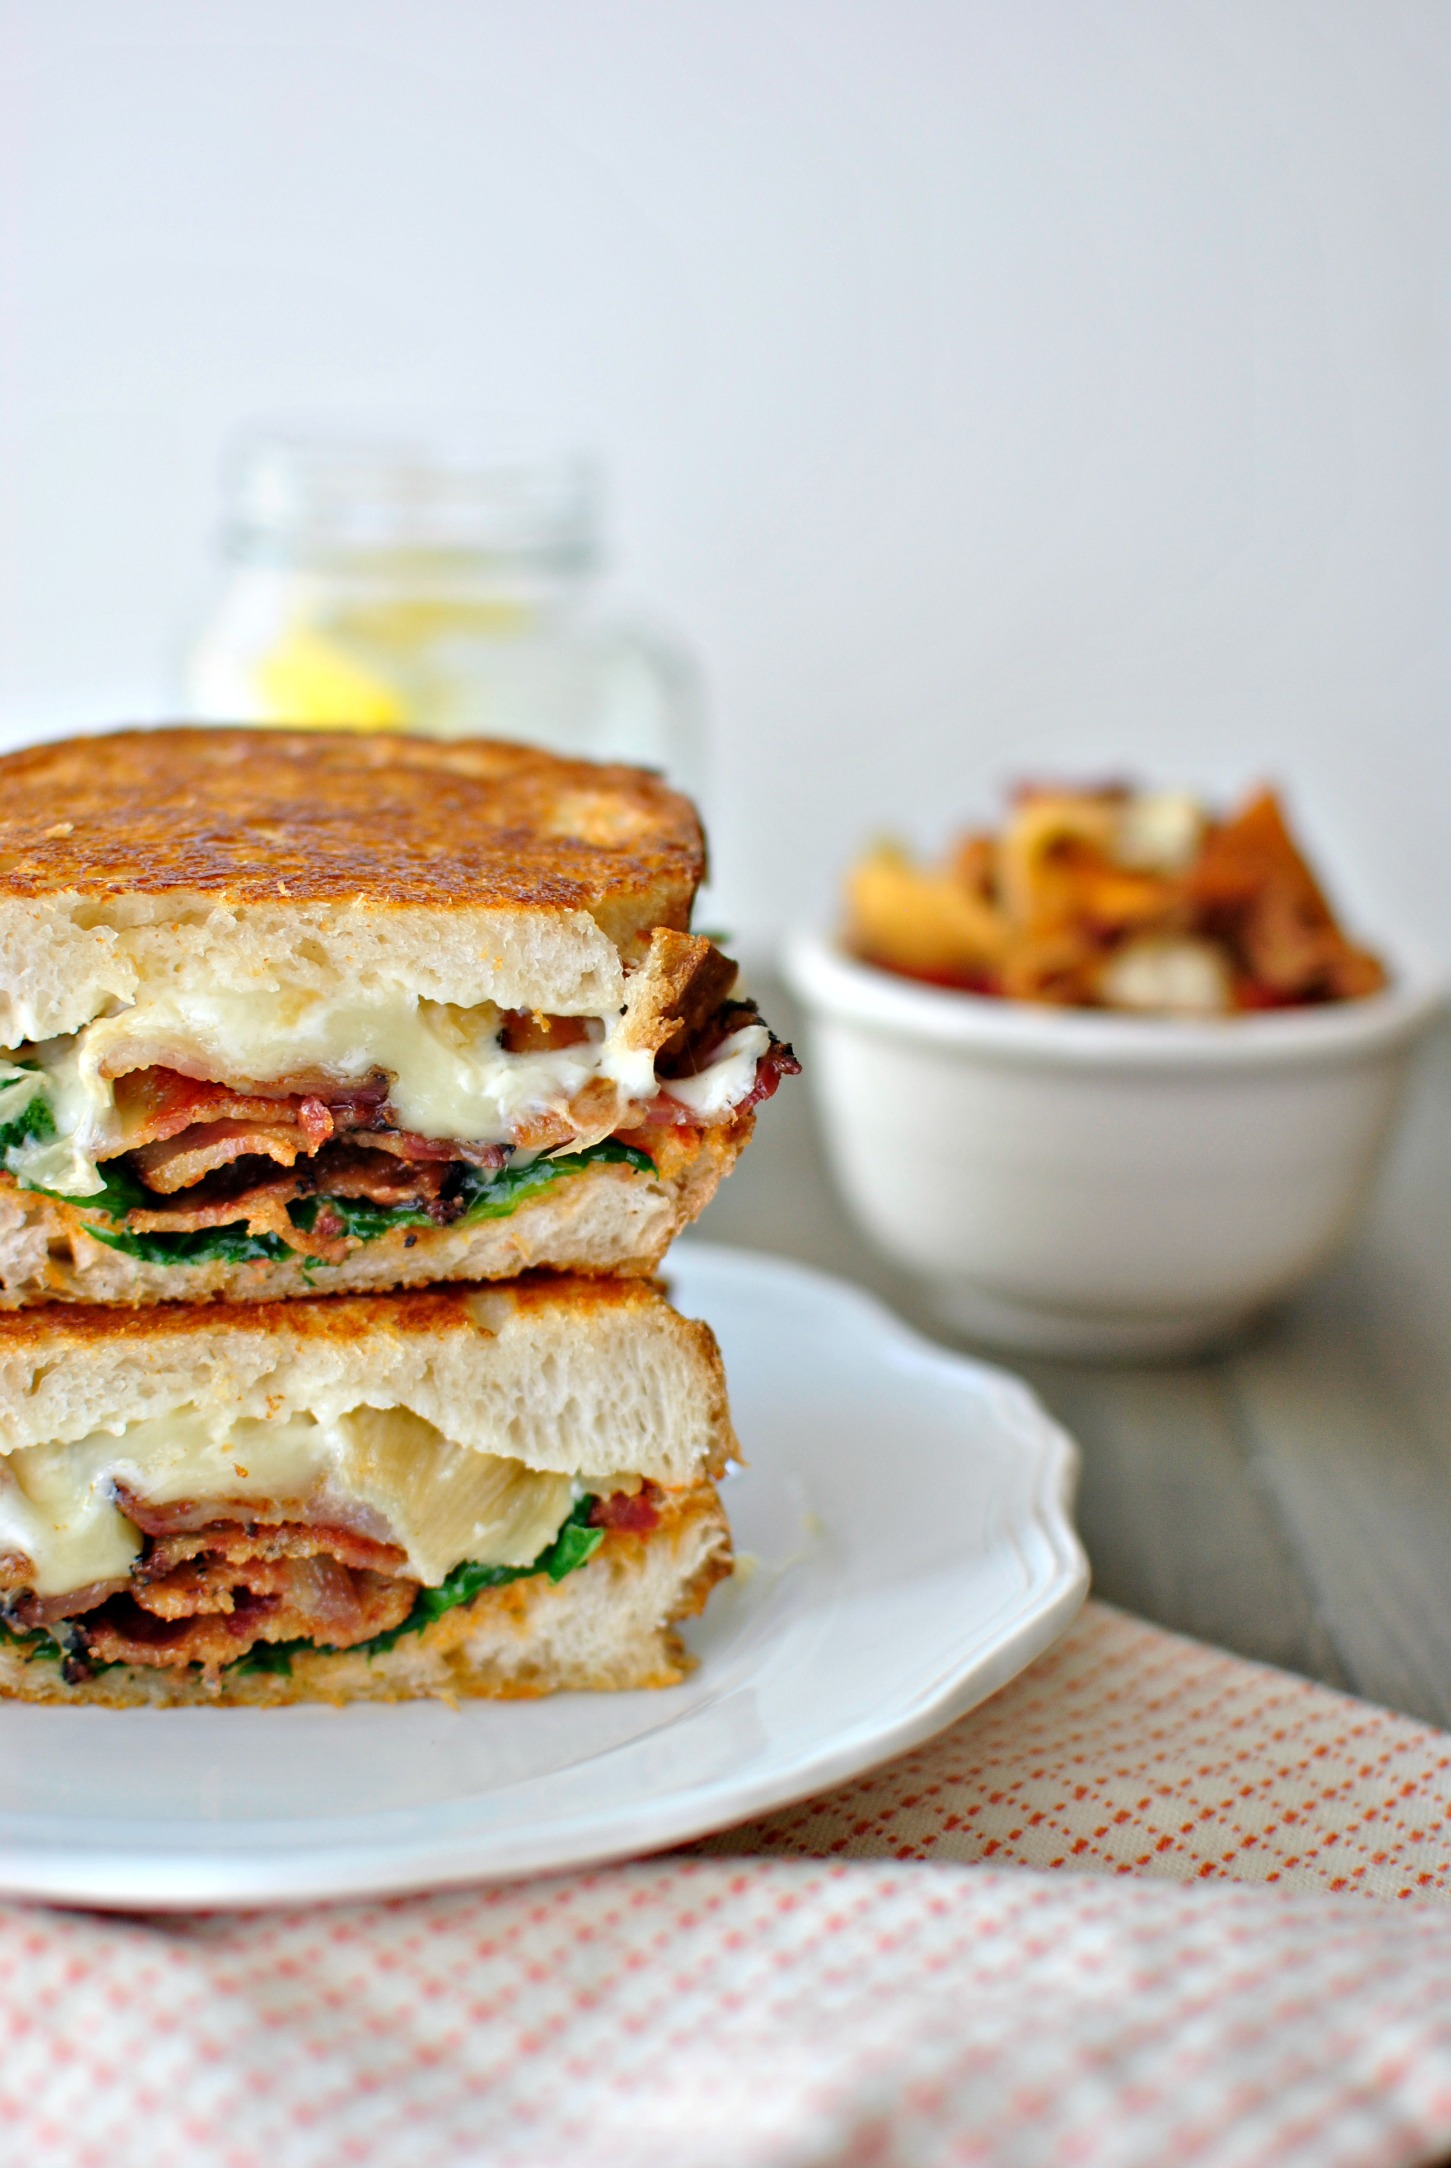 Simply Scratch » Fancy BLT Grilled Cheese Sandwiches